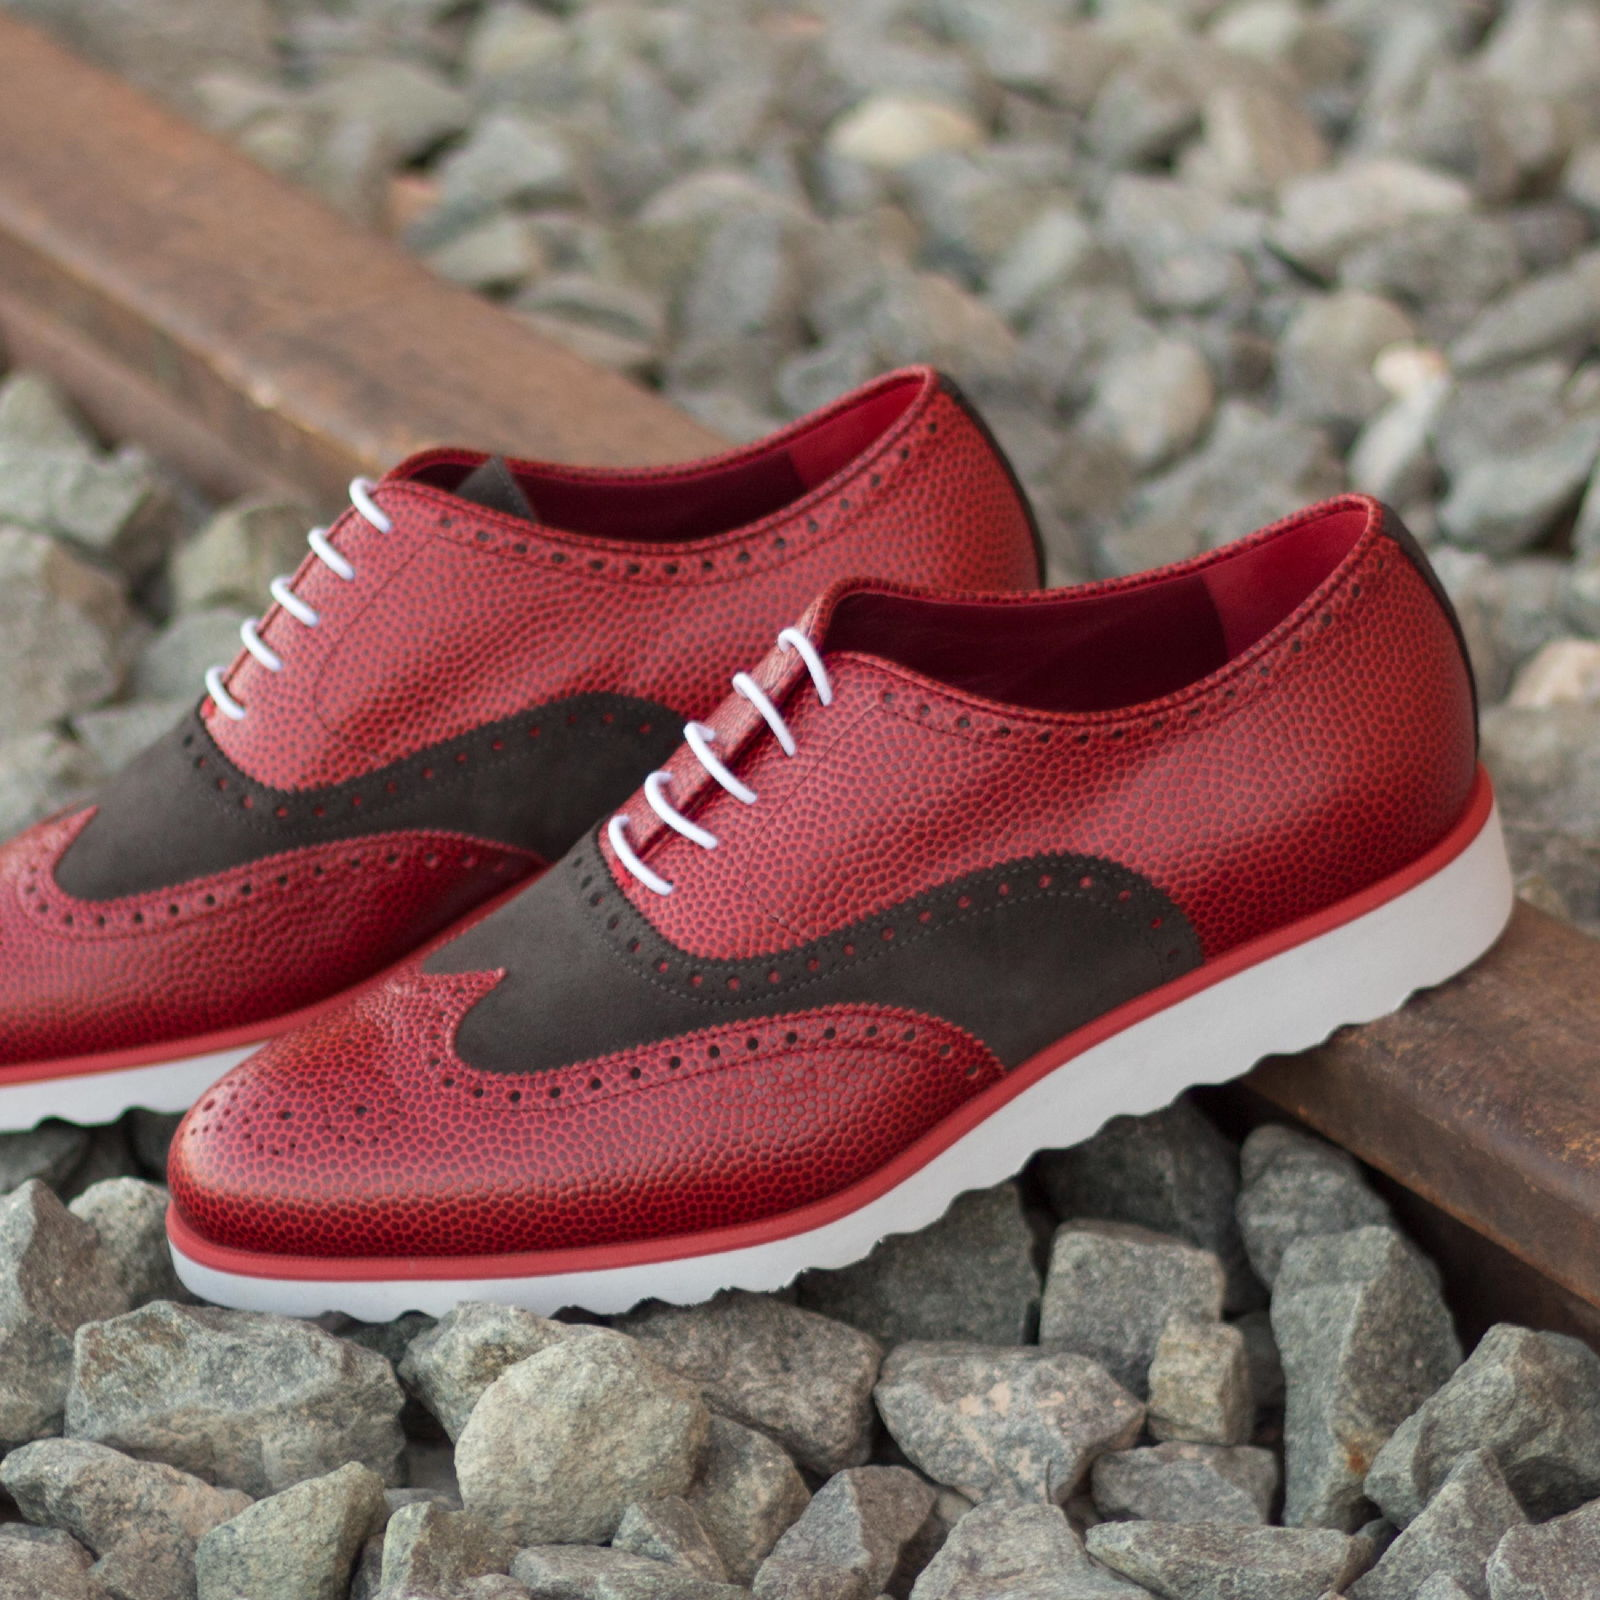 Full brogue grey lux suede + red pebble grain : 240€